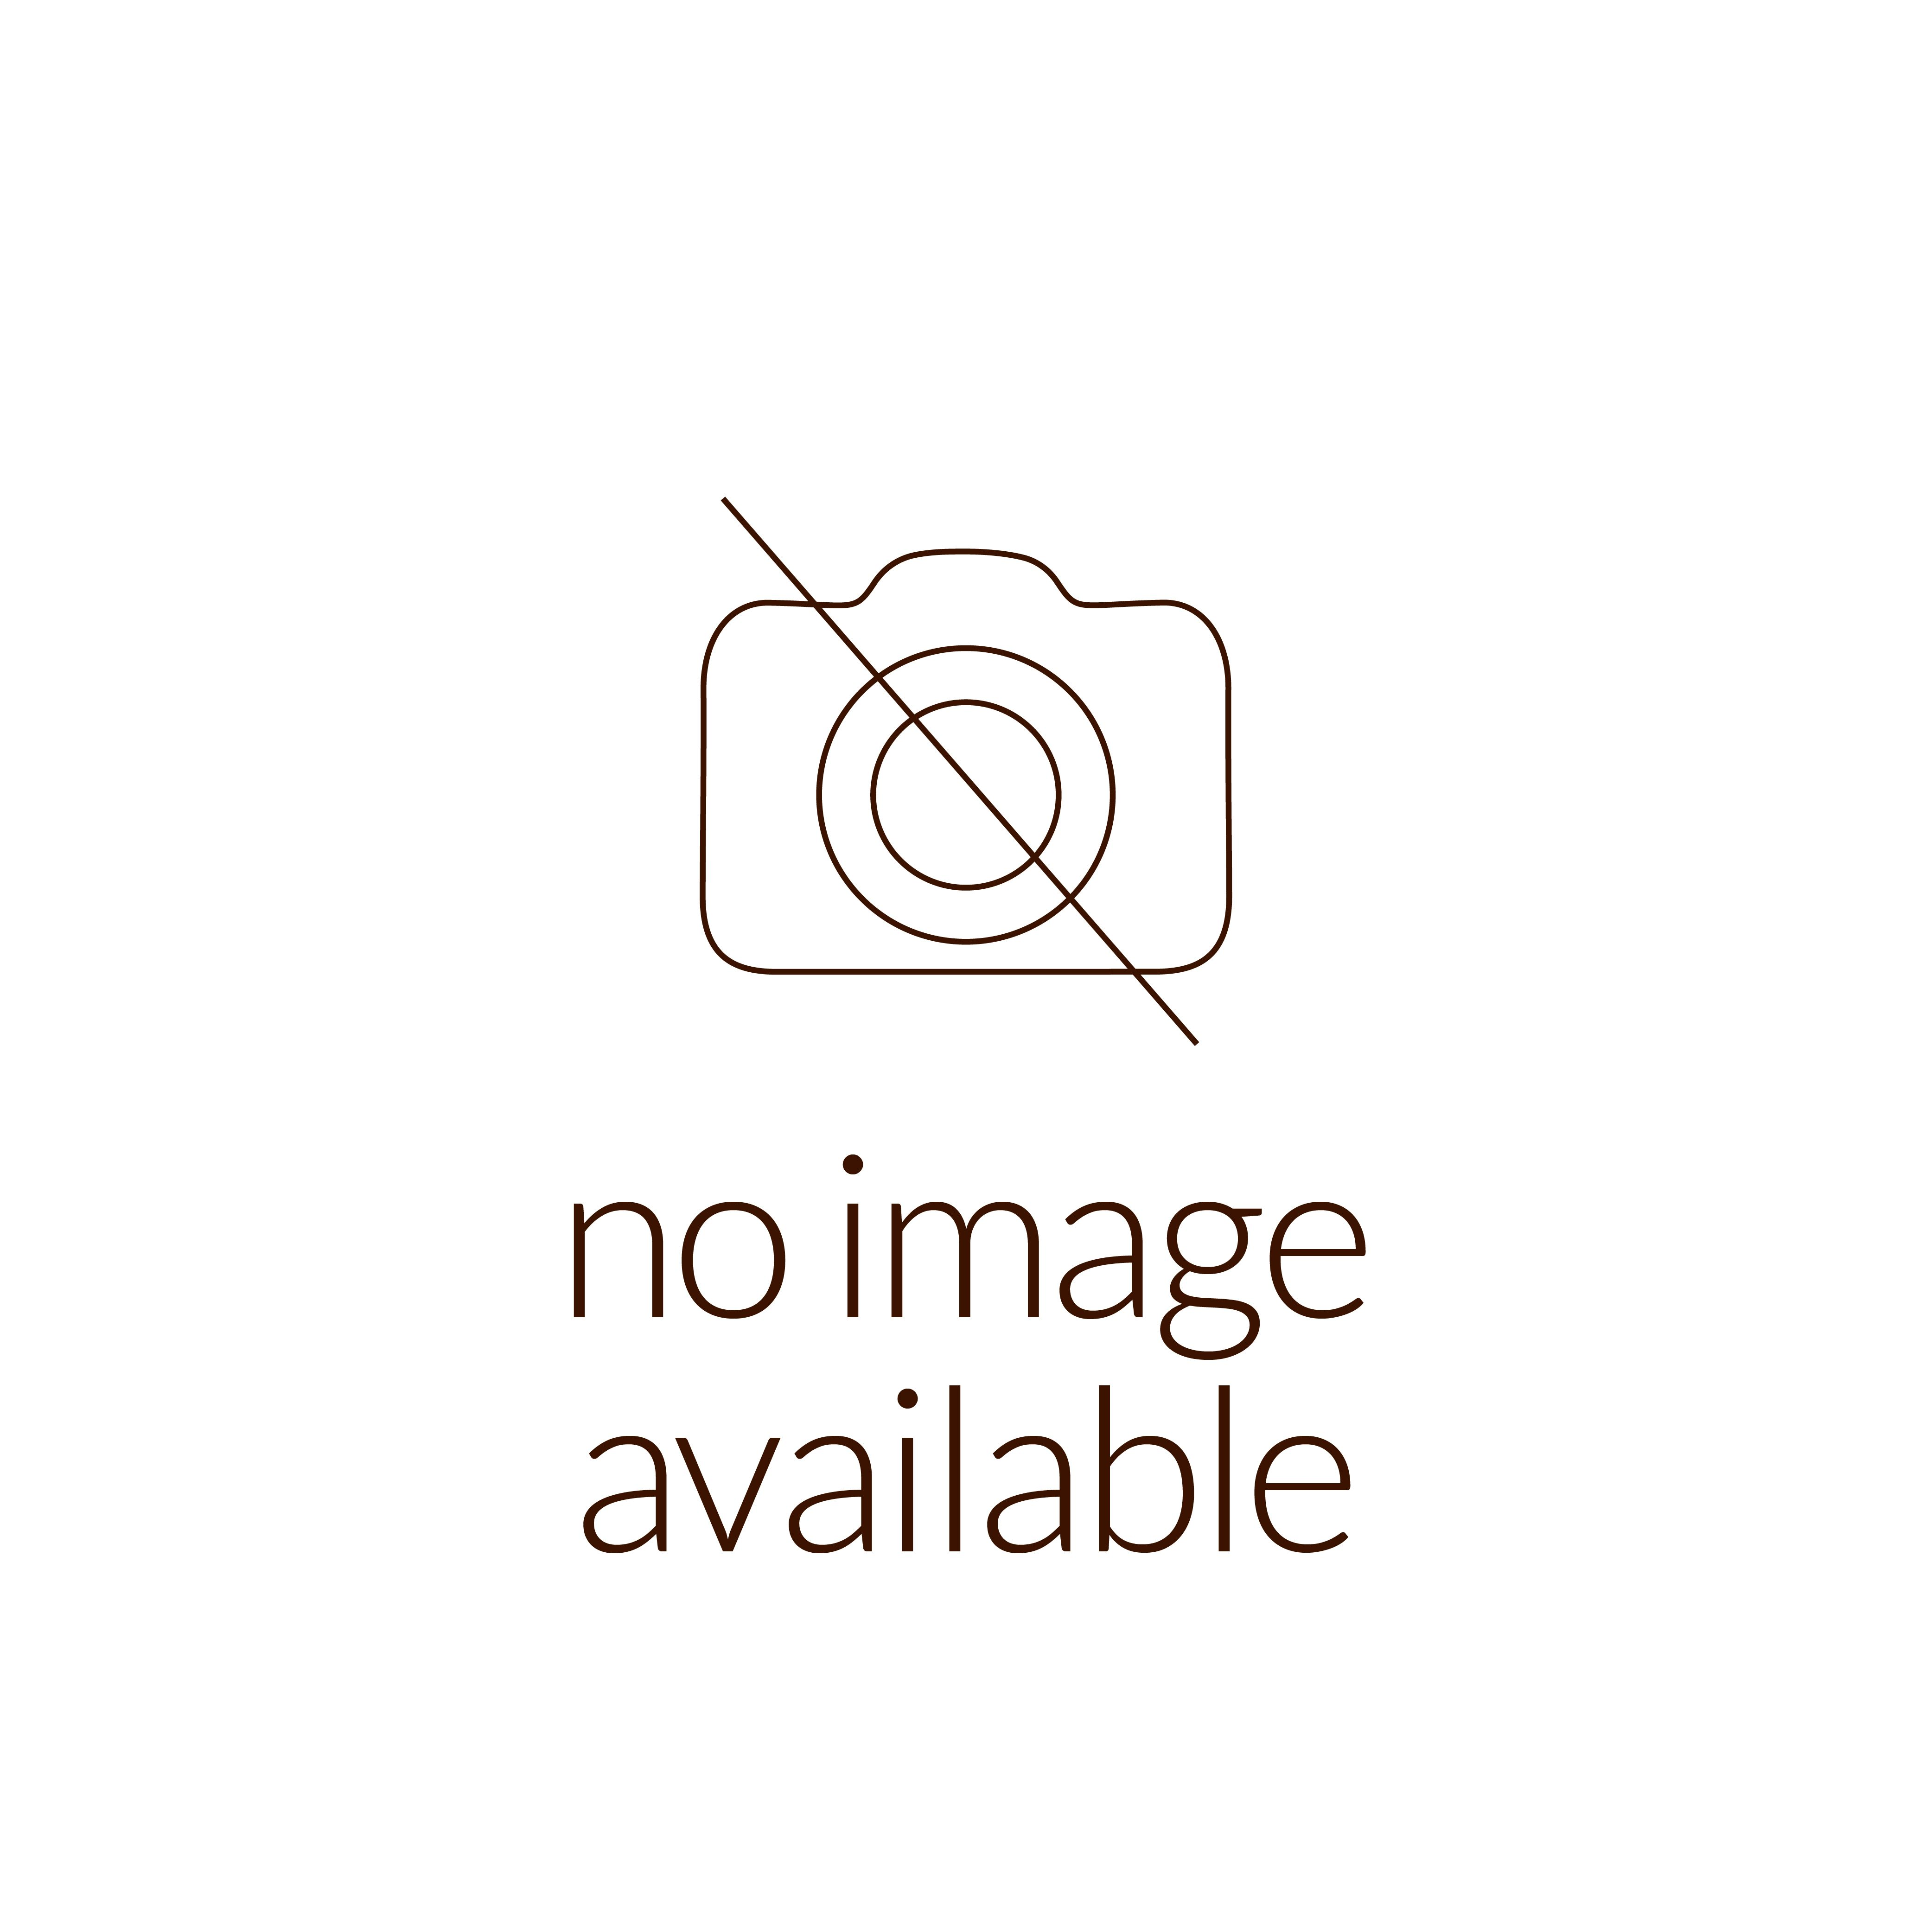 State Medal, Statio X, Jesus is stripped of his garments, Silver 999, 39 mm, 1 oz - Obverse